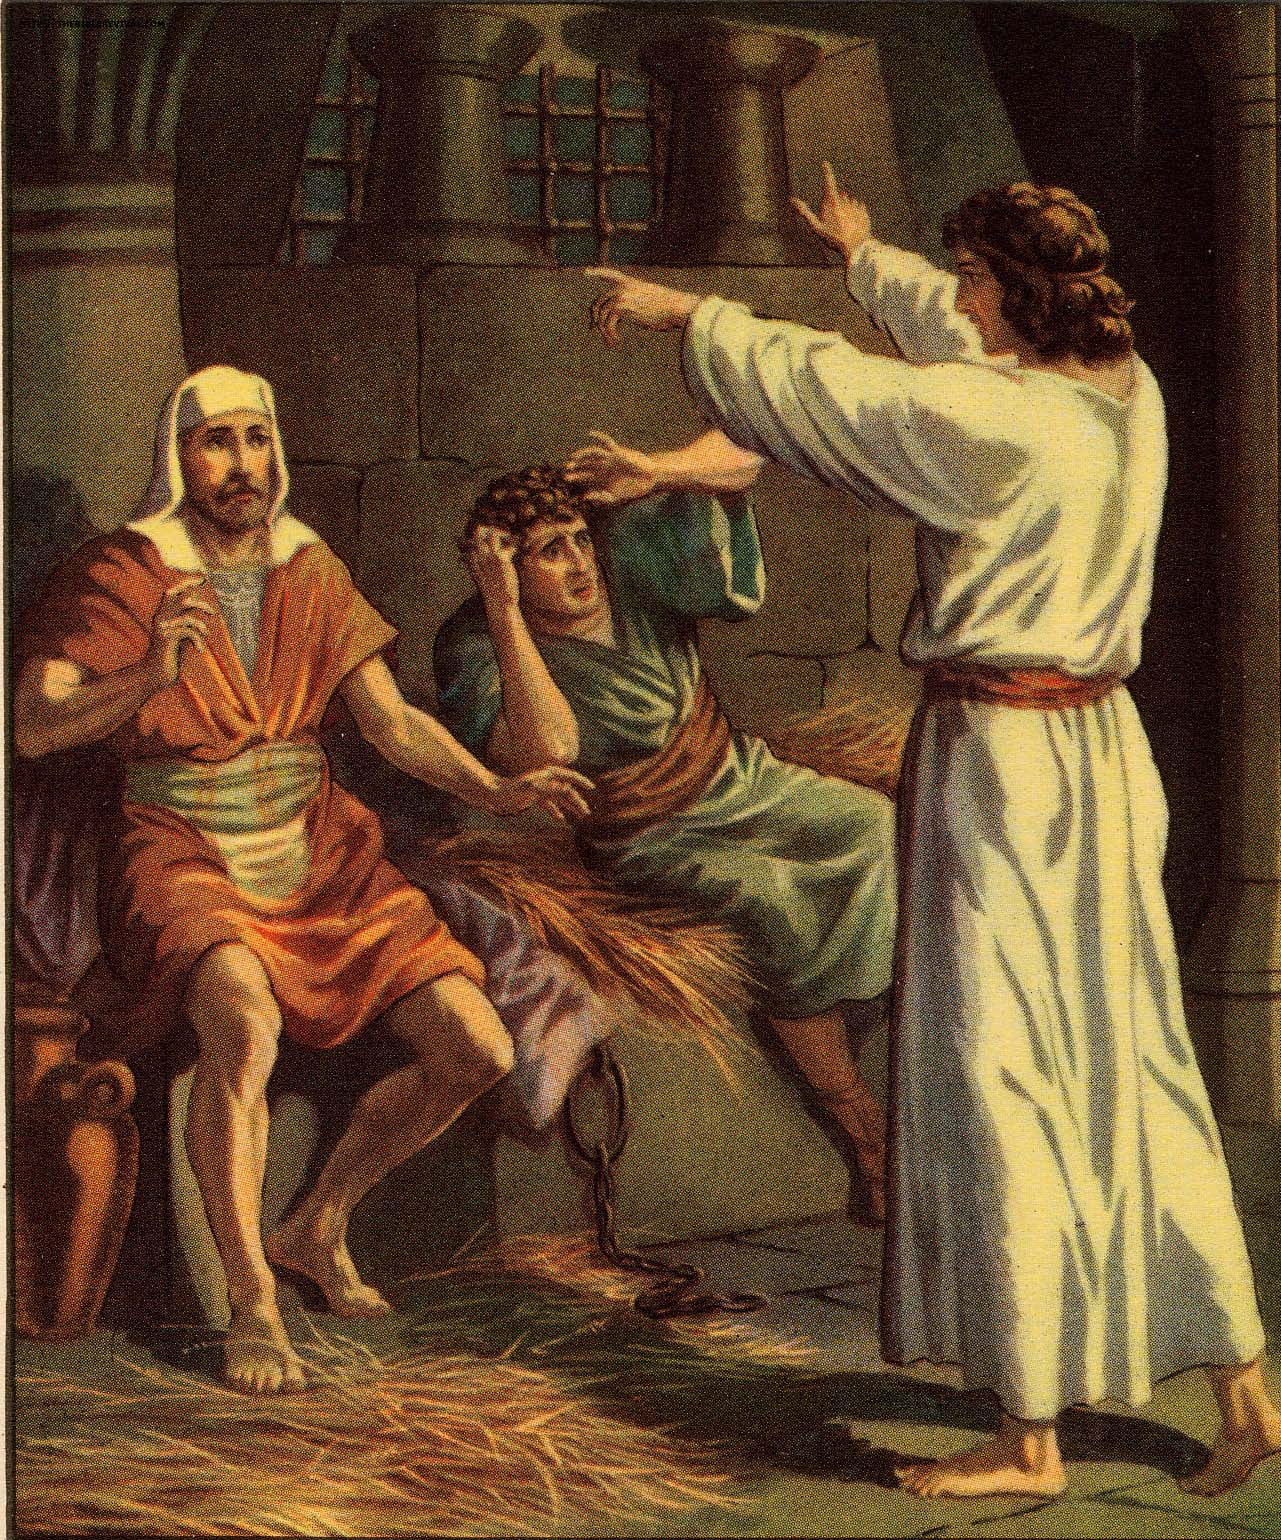 an analysis of the bible story of joseph and potiphar Narrator: potiphar saw that the lord was with joseph, and whatever he did prospered, so he put him in charge of all of his household (take off rope and give joseph clip board, then exit) now potiphar's wife took a fancy to joseph and wanted him to sin against god.